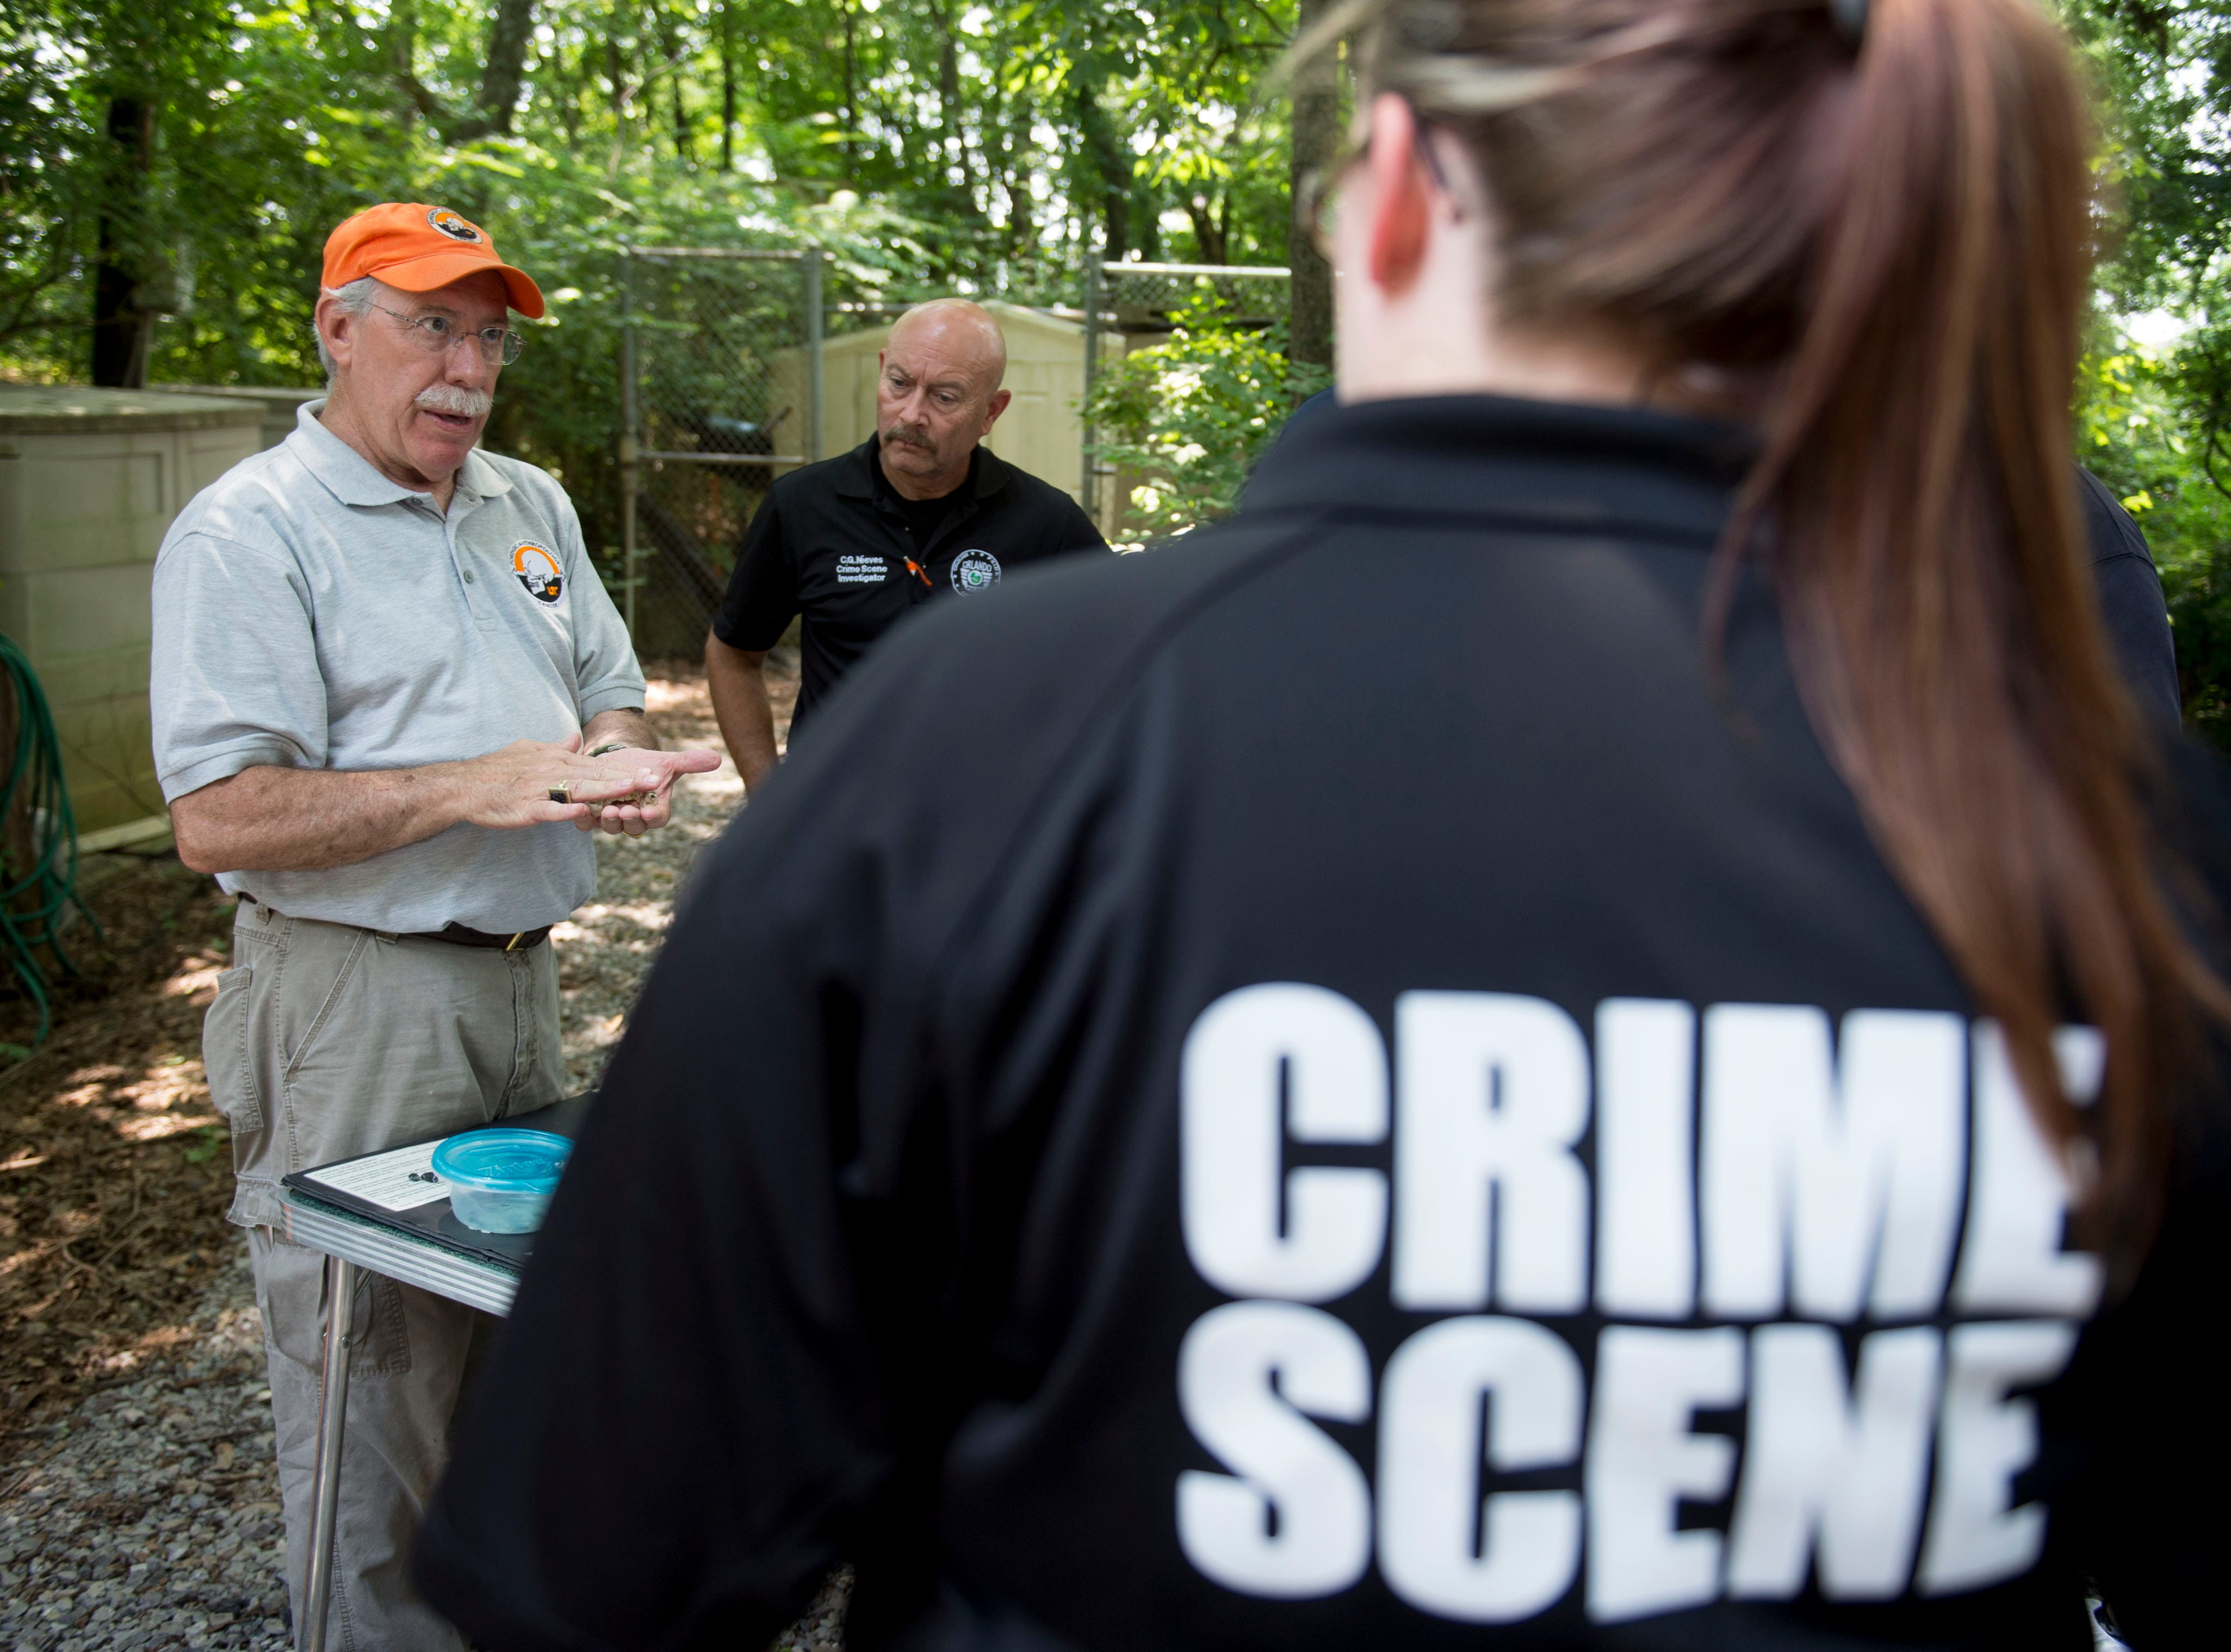 Dr. Randy Parce, a forensic odontologist, teaches a group of law enforcement professionals in using dental information for police investigations. Thirteen law enforcement agencies from across the United States are taking part in a weeklong training course at the University of Tennessee's Forensic Anthropology Center.